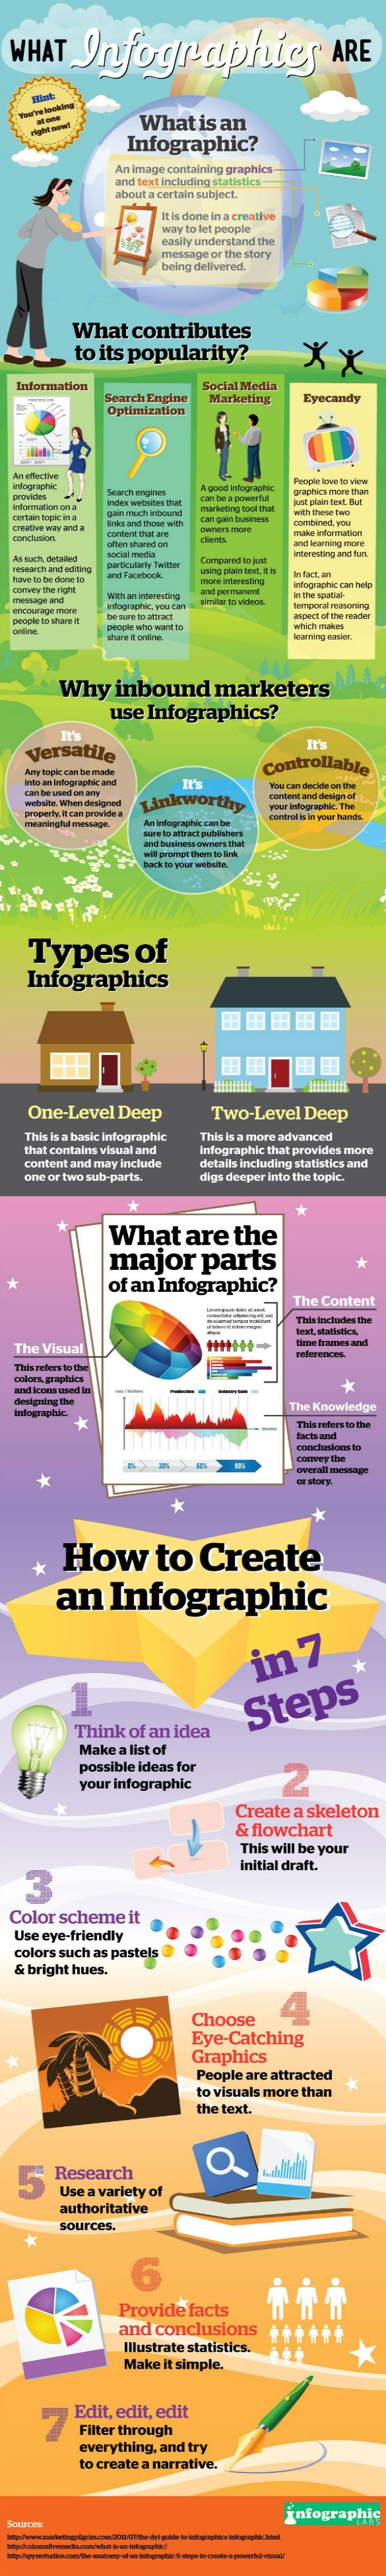 How to Create an Awesome Infographic